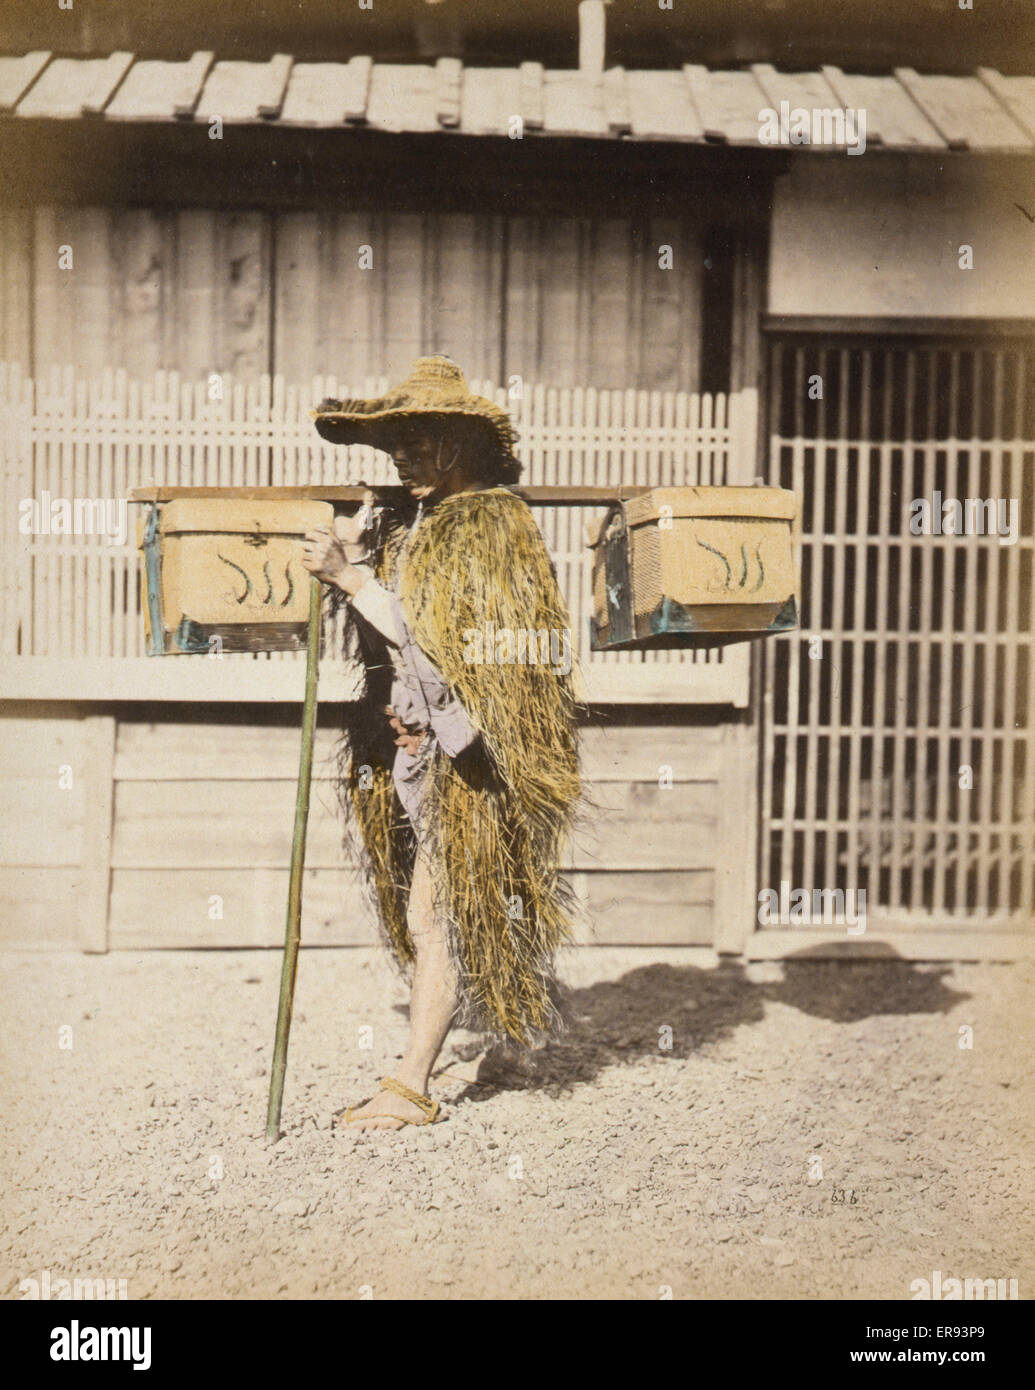 Porter wearing protective outer garments made of straw. Photograph shows a porter, full-length, standing, facing - Stock Image